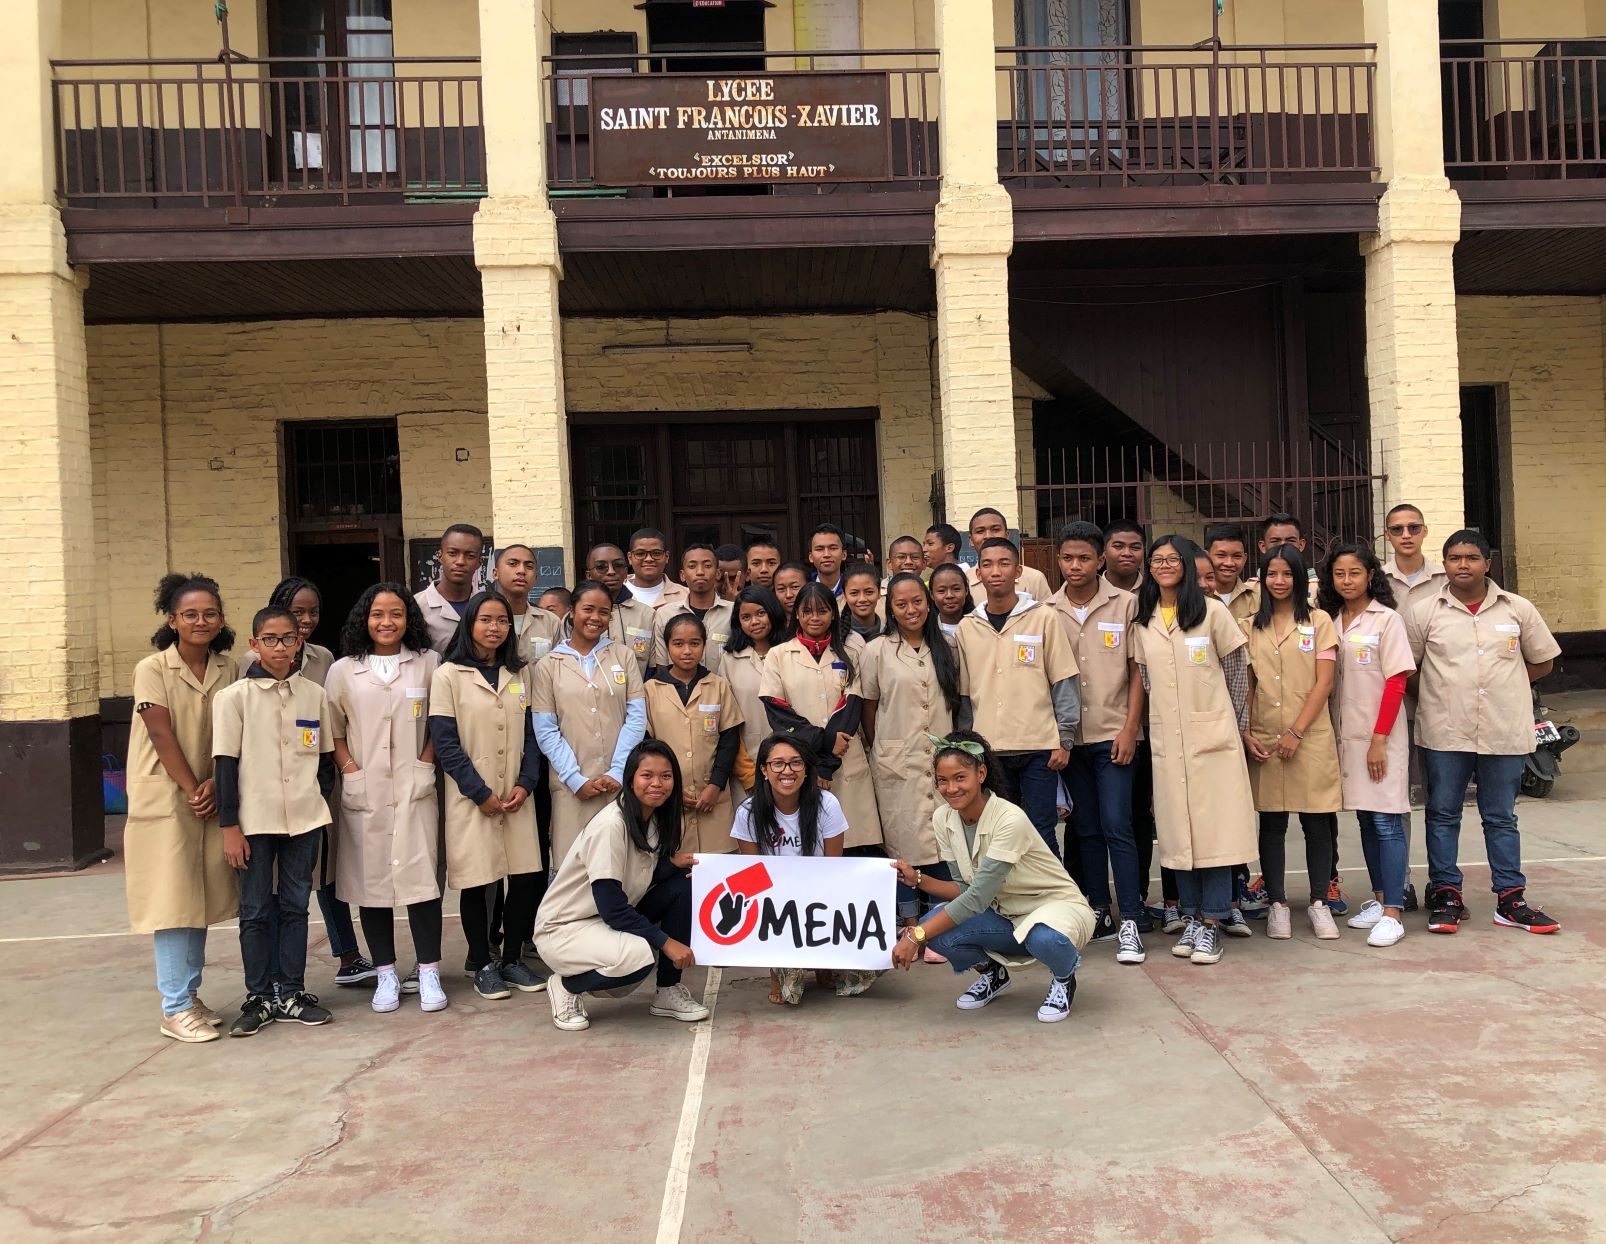 Group of high school student dressed in brown uniform with Omena logo